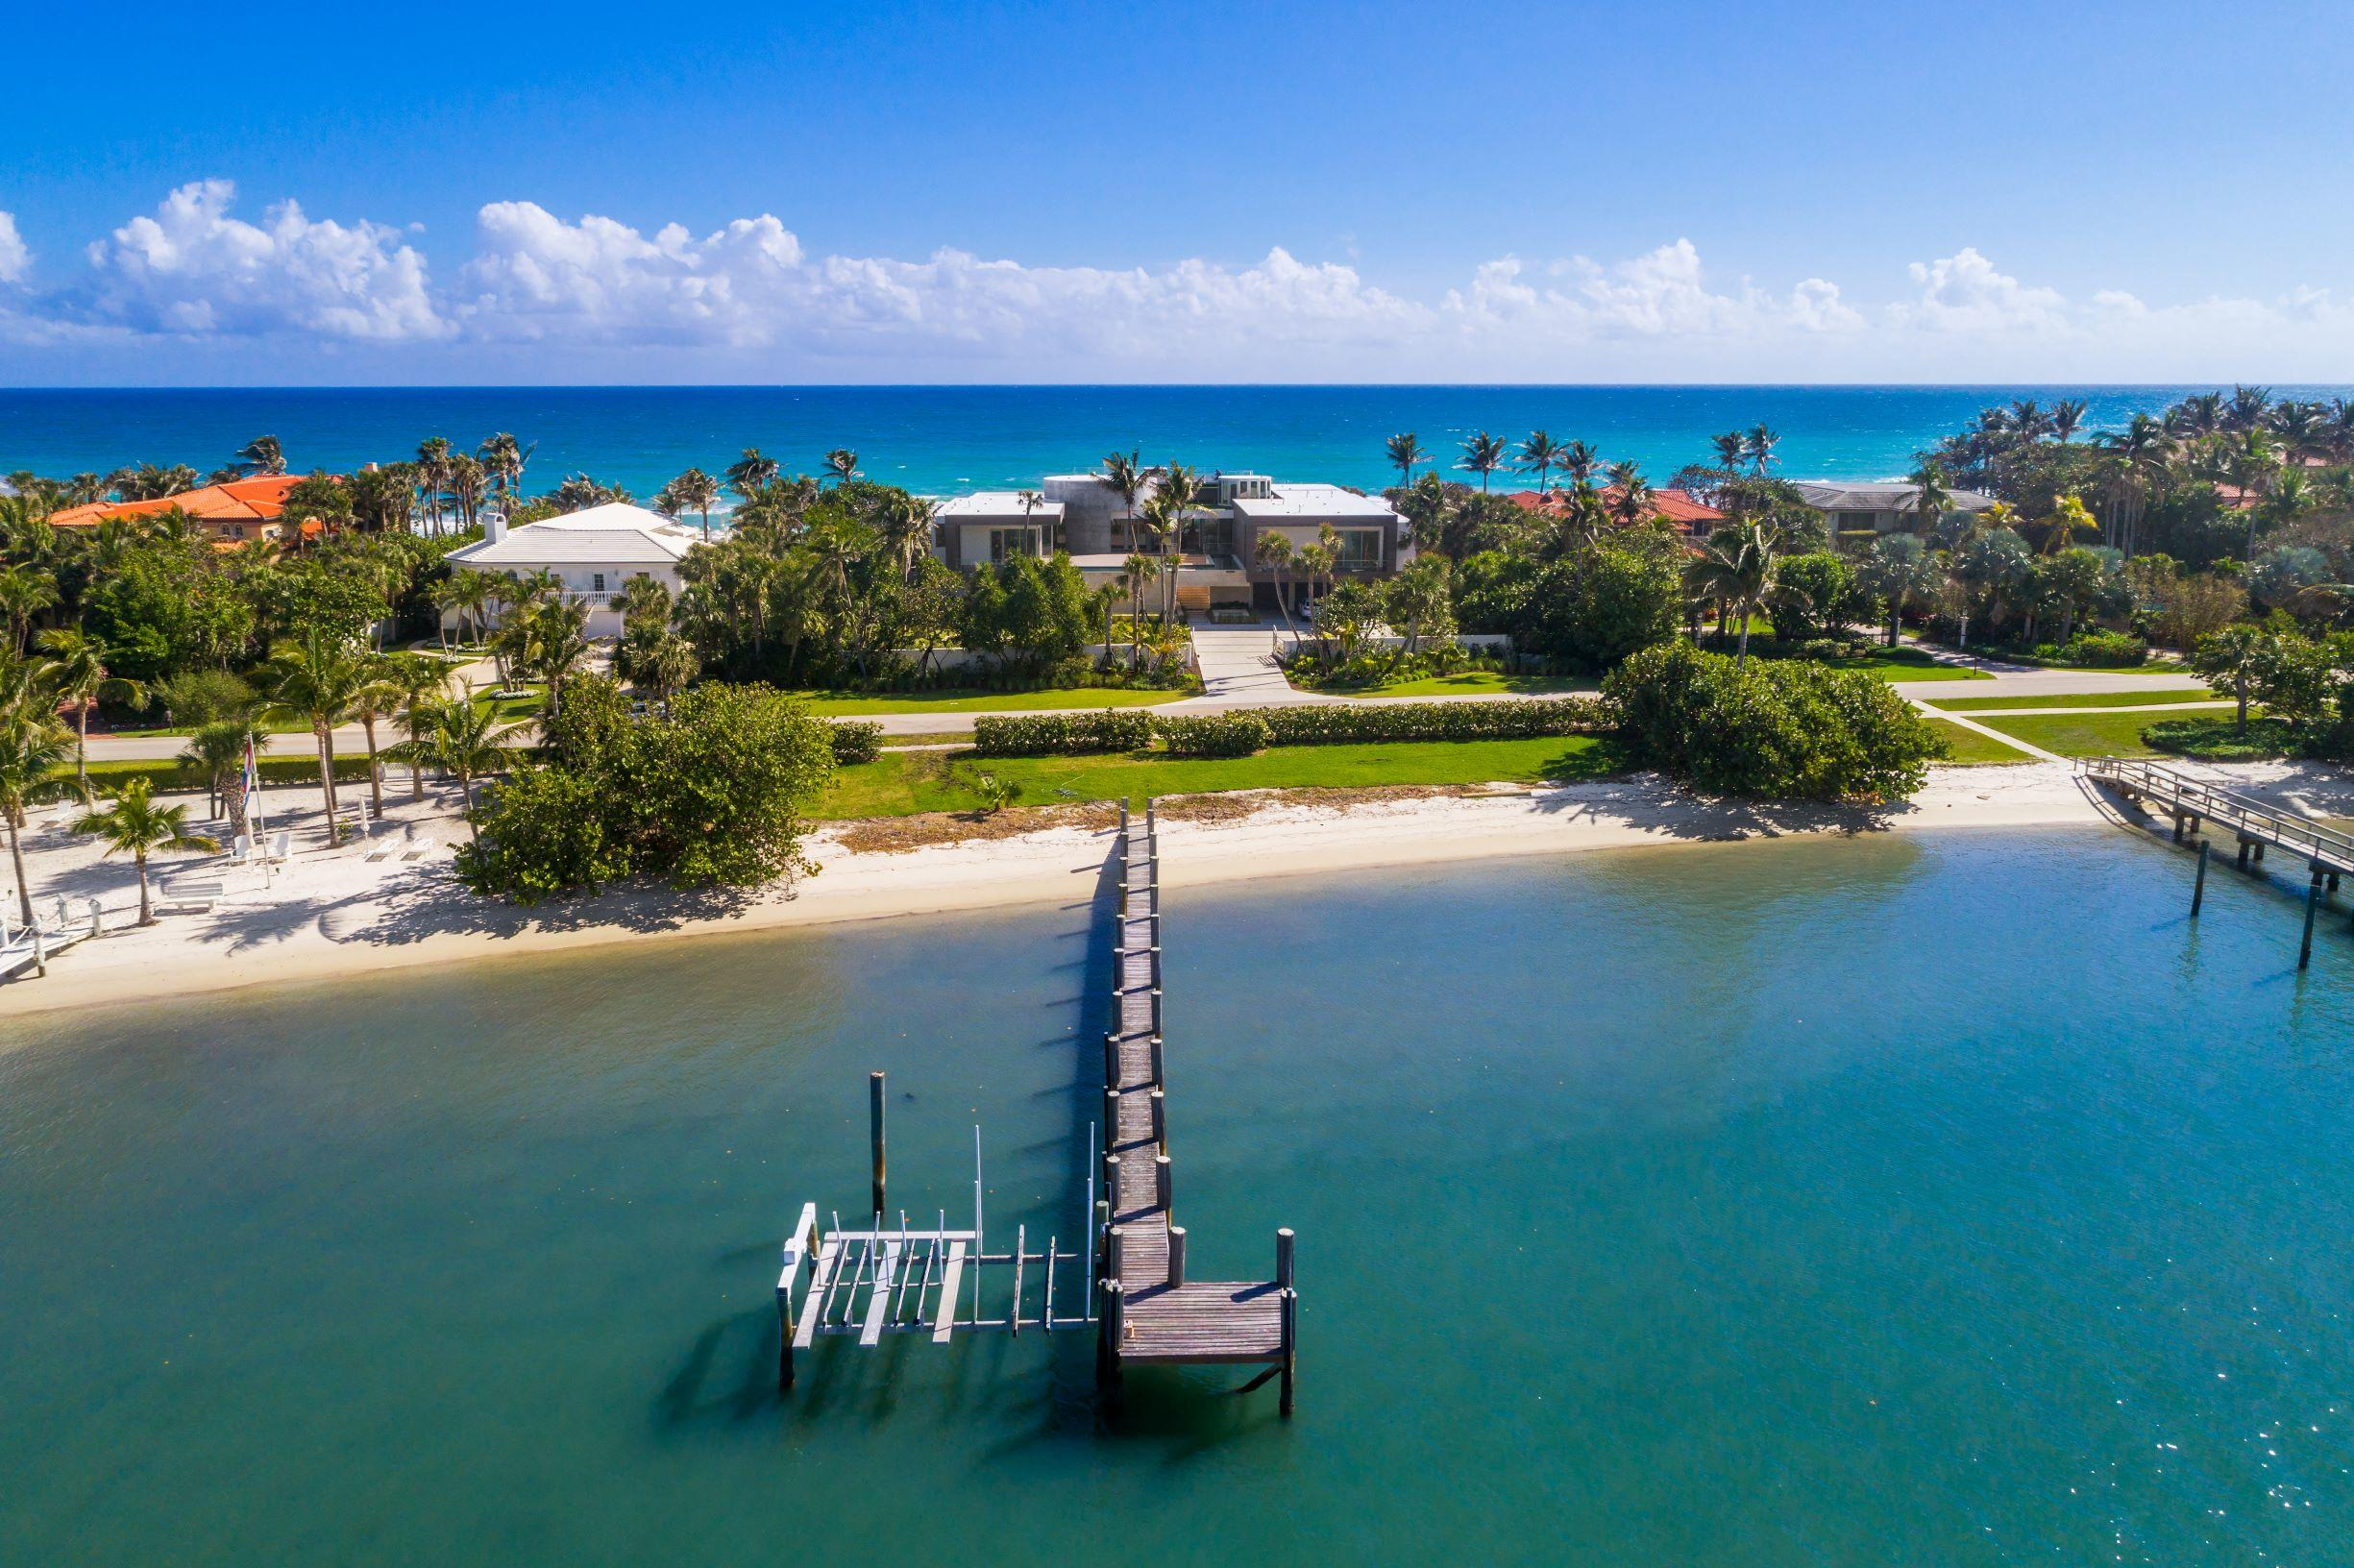 609 Beach Road, Jupiter, Florida 33469, 7 Bedrooms Bedrooms, ,8.1 BathroomsBathrooms,A,Single family,Beach,RX-10486765